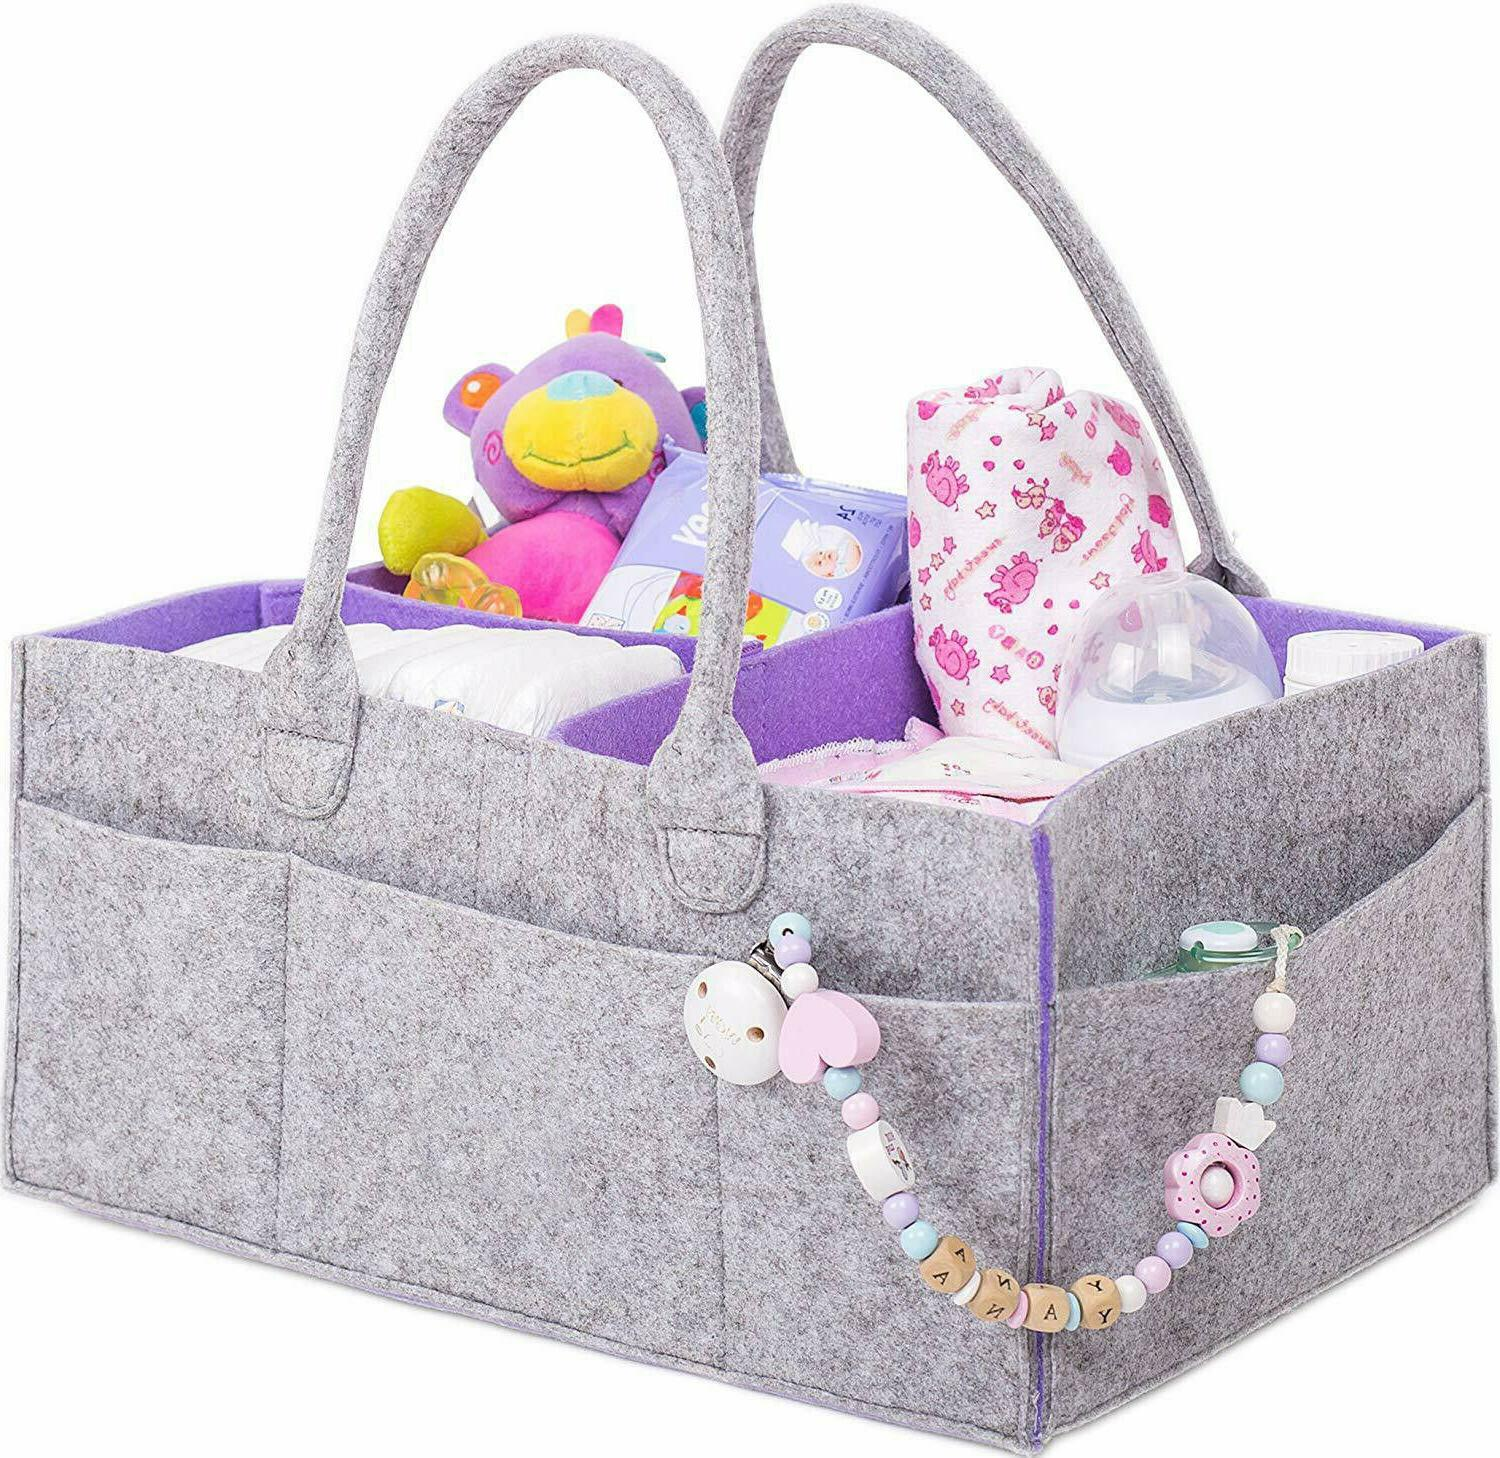 baby diaper caddy organizer with changing mat